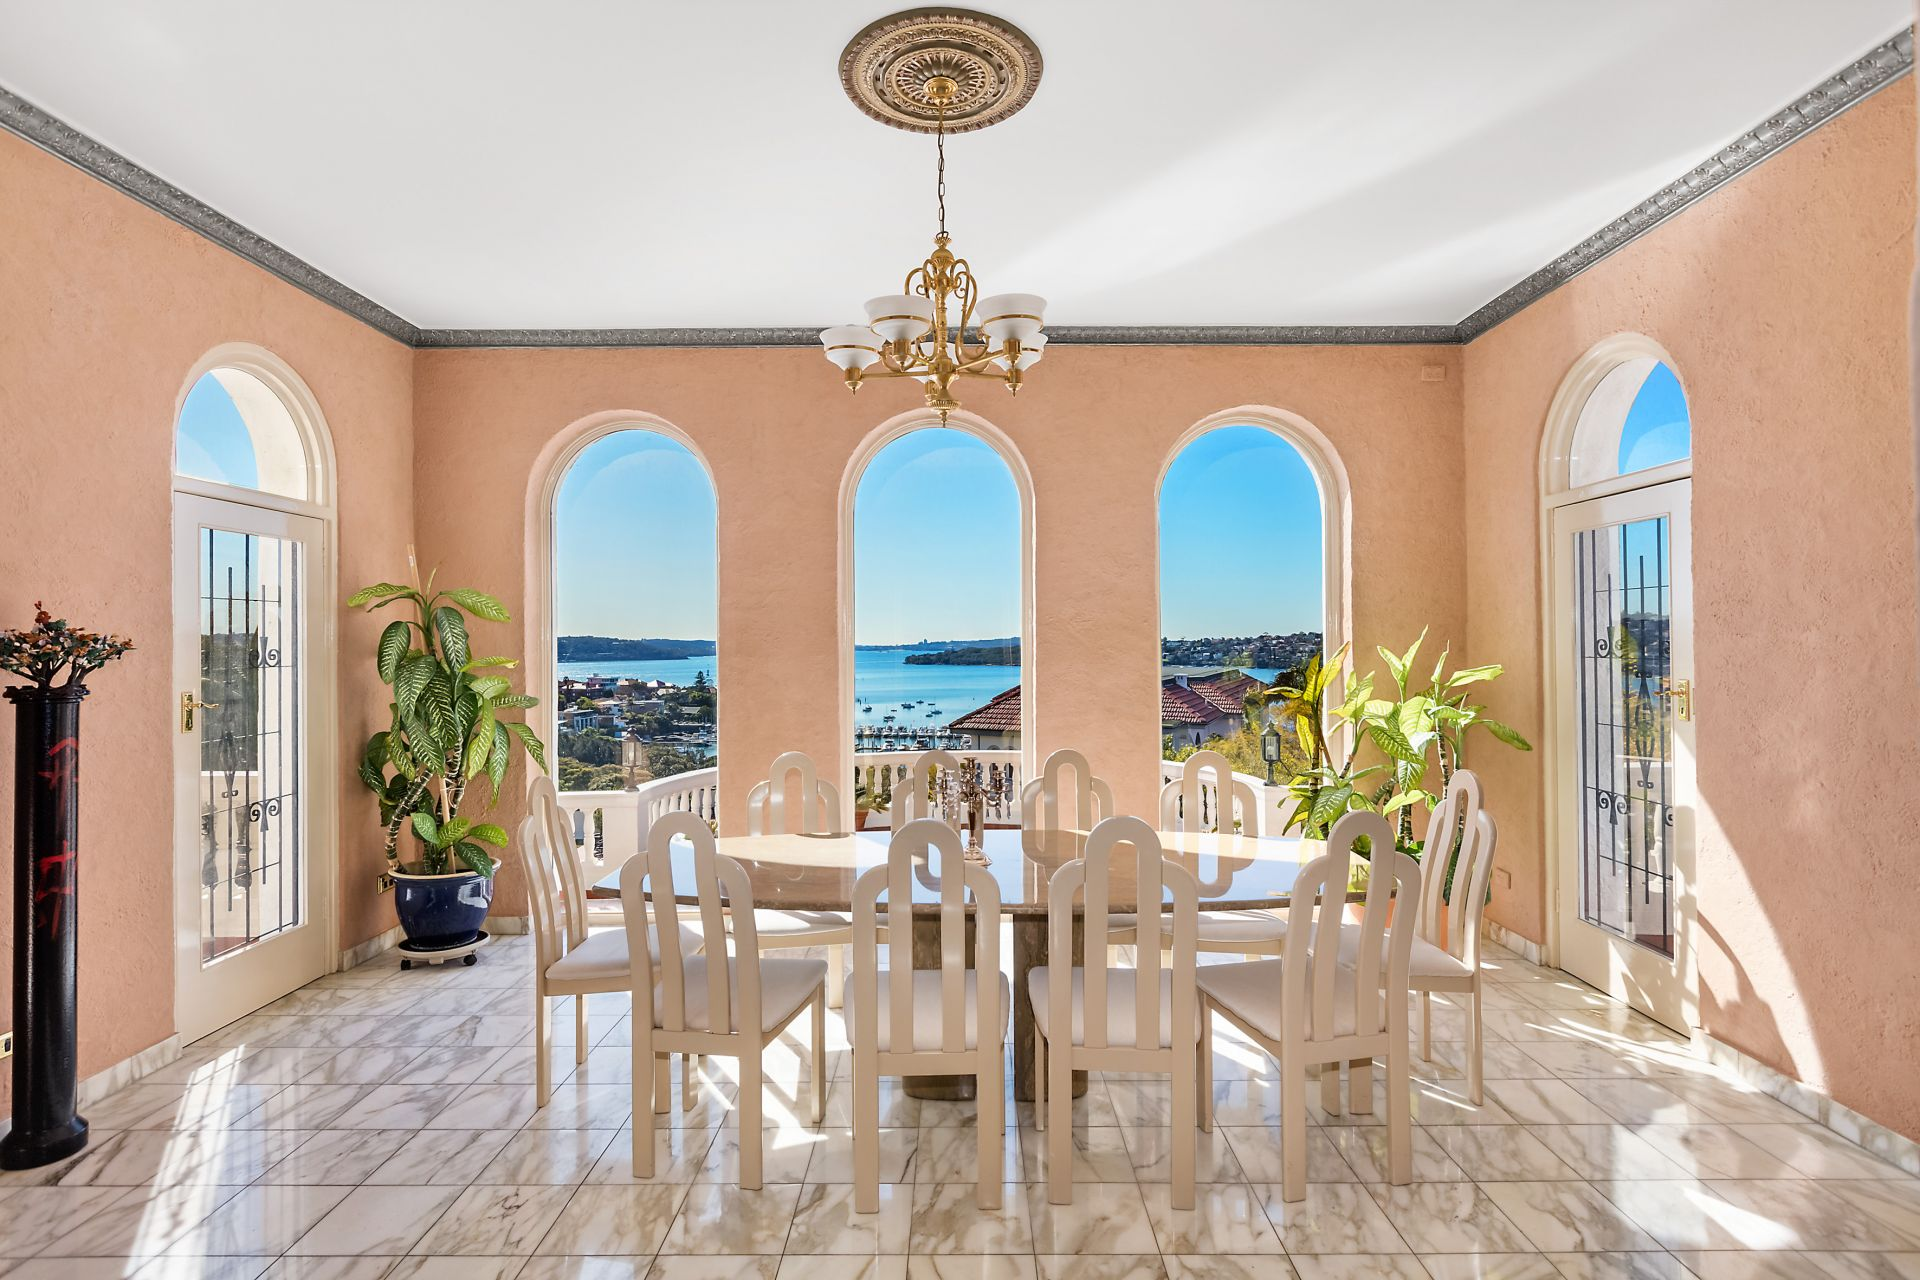 Additional photo for property listing at 'Alcooringa' - The Glamour Of Old Hollywood With Panoramic Harbour Views And Every Luxury  Bellevue Hill, New South Wales,2023 Australië